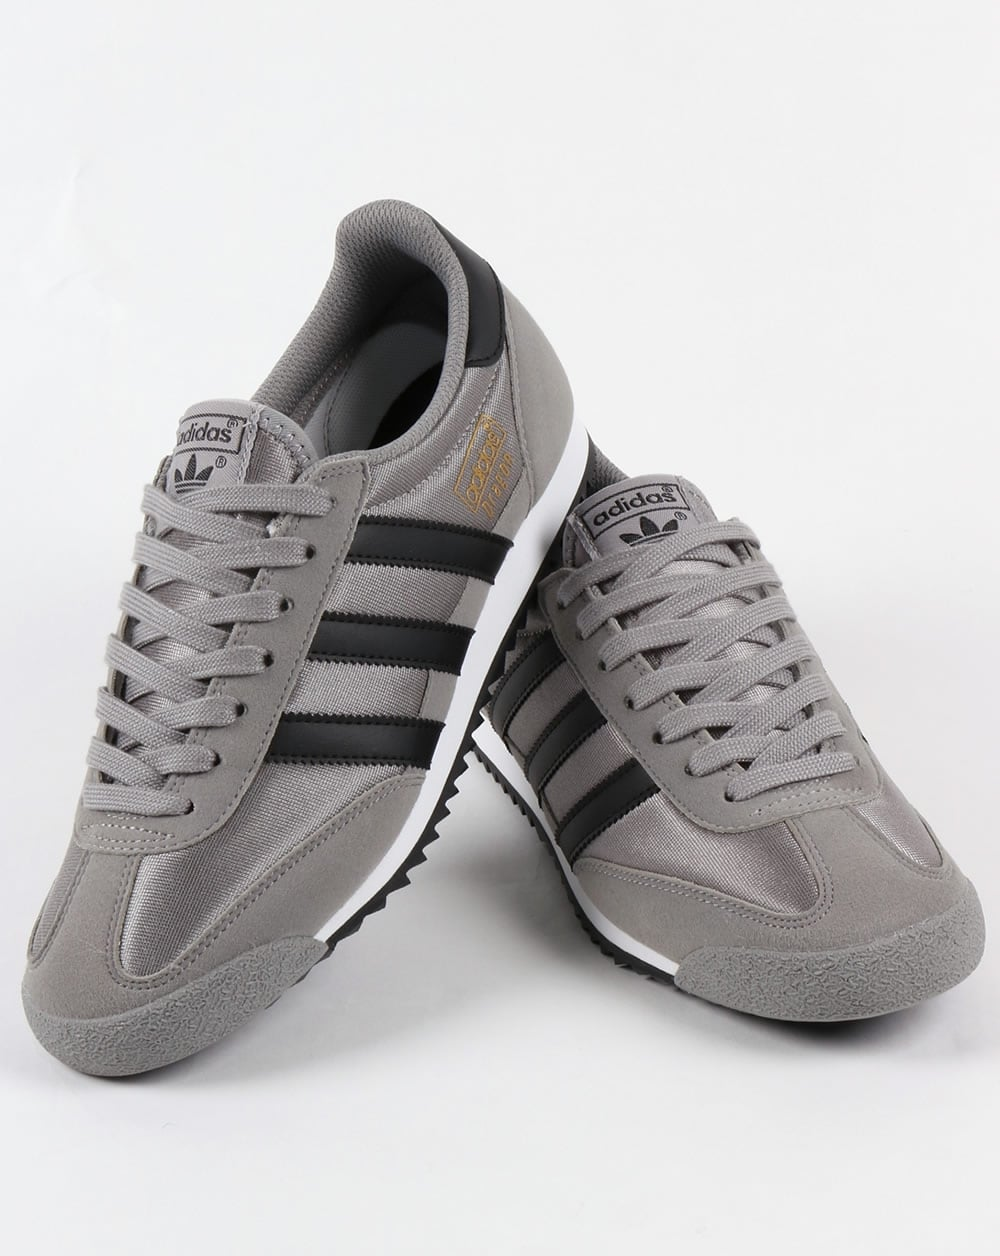 outlet store cc26b 17529 Adidas Dragon OG Trainers Solid GreyBlack